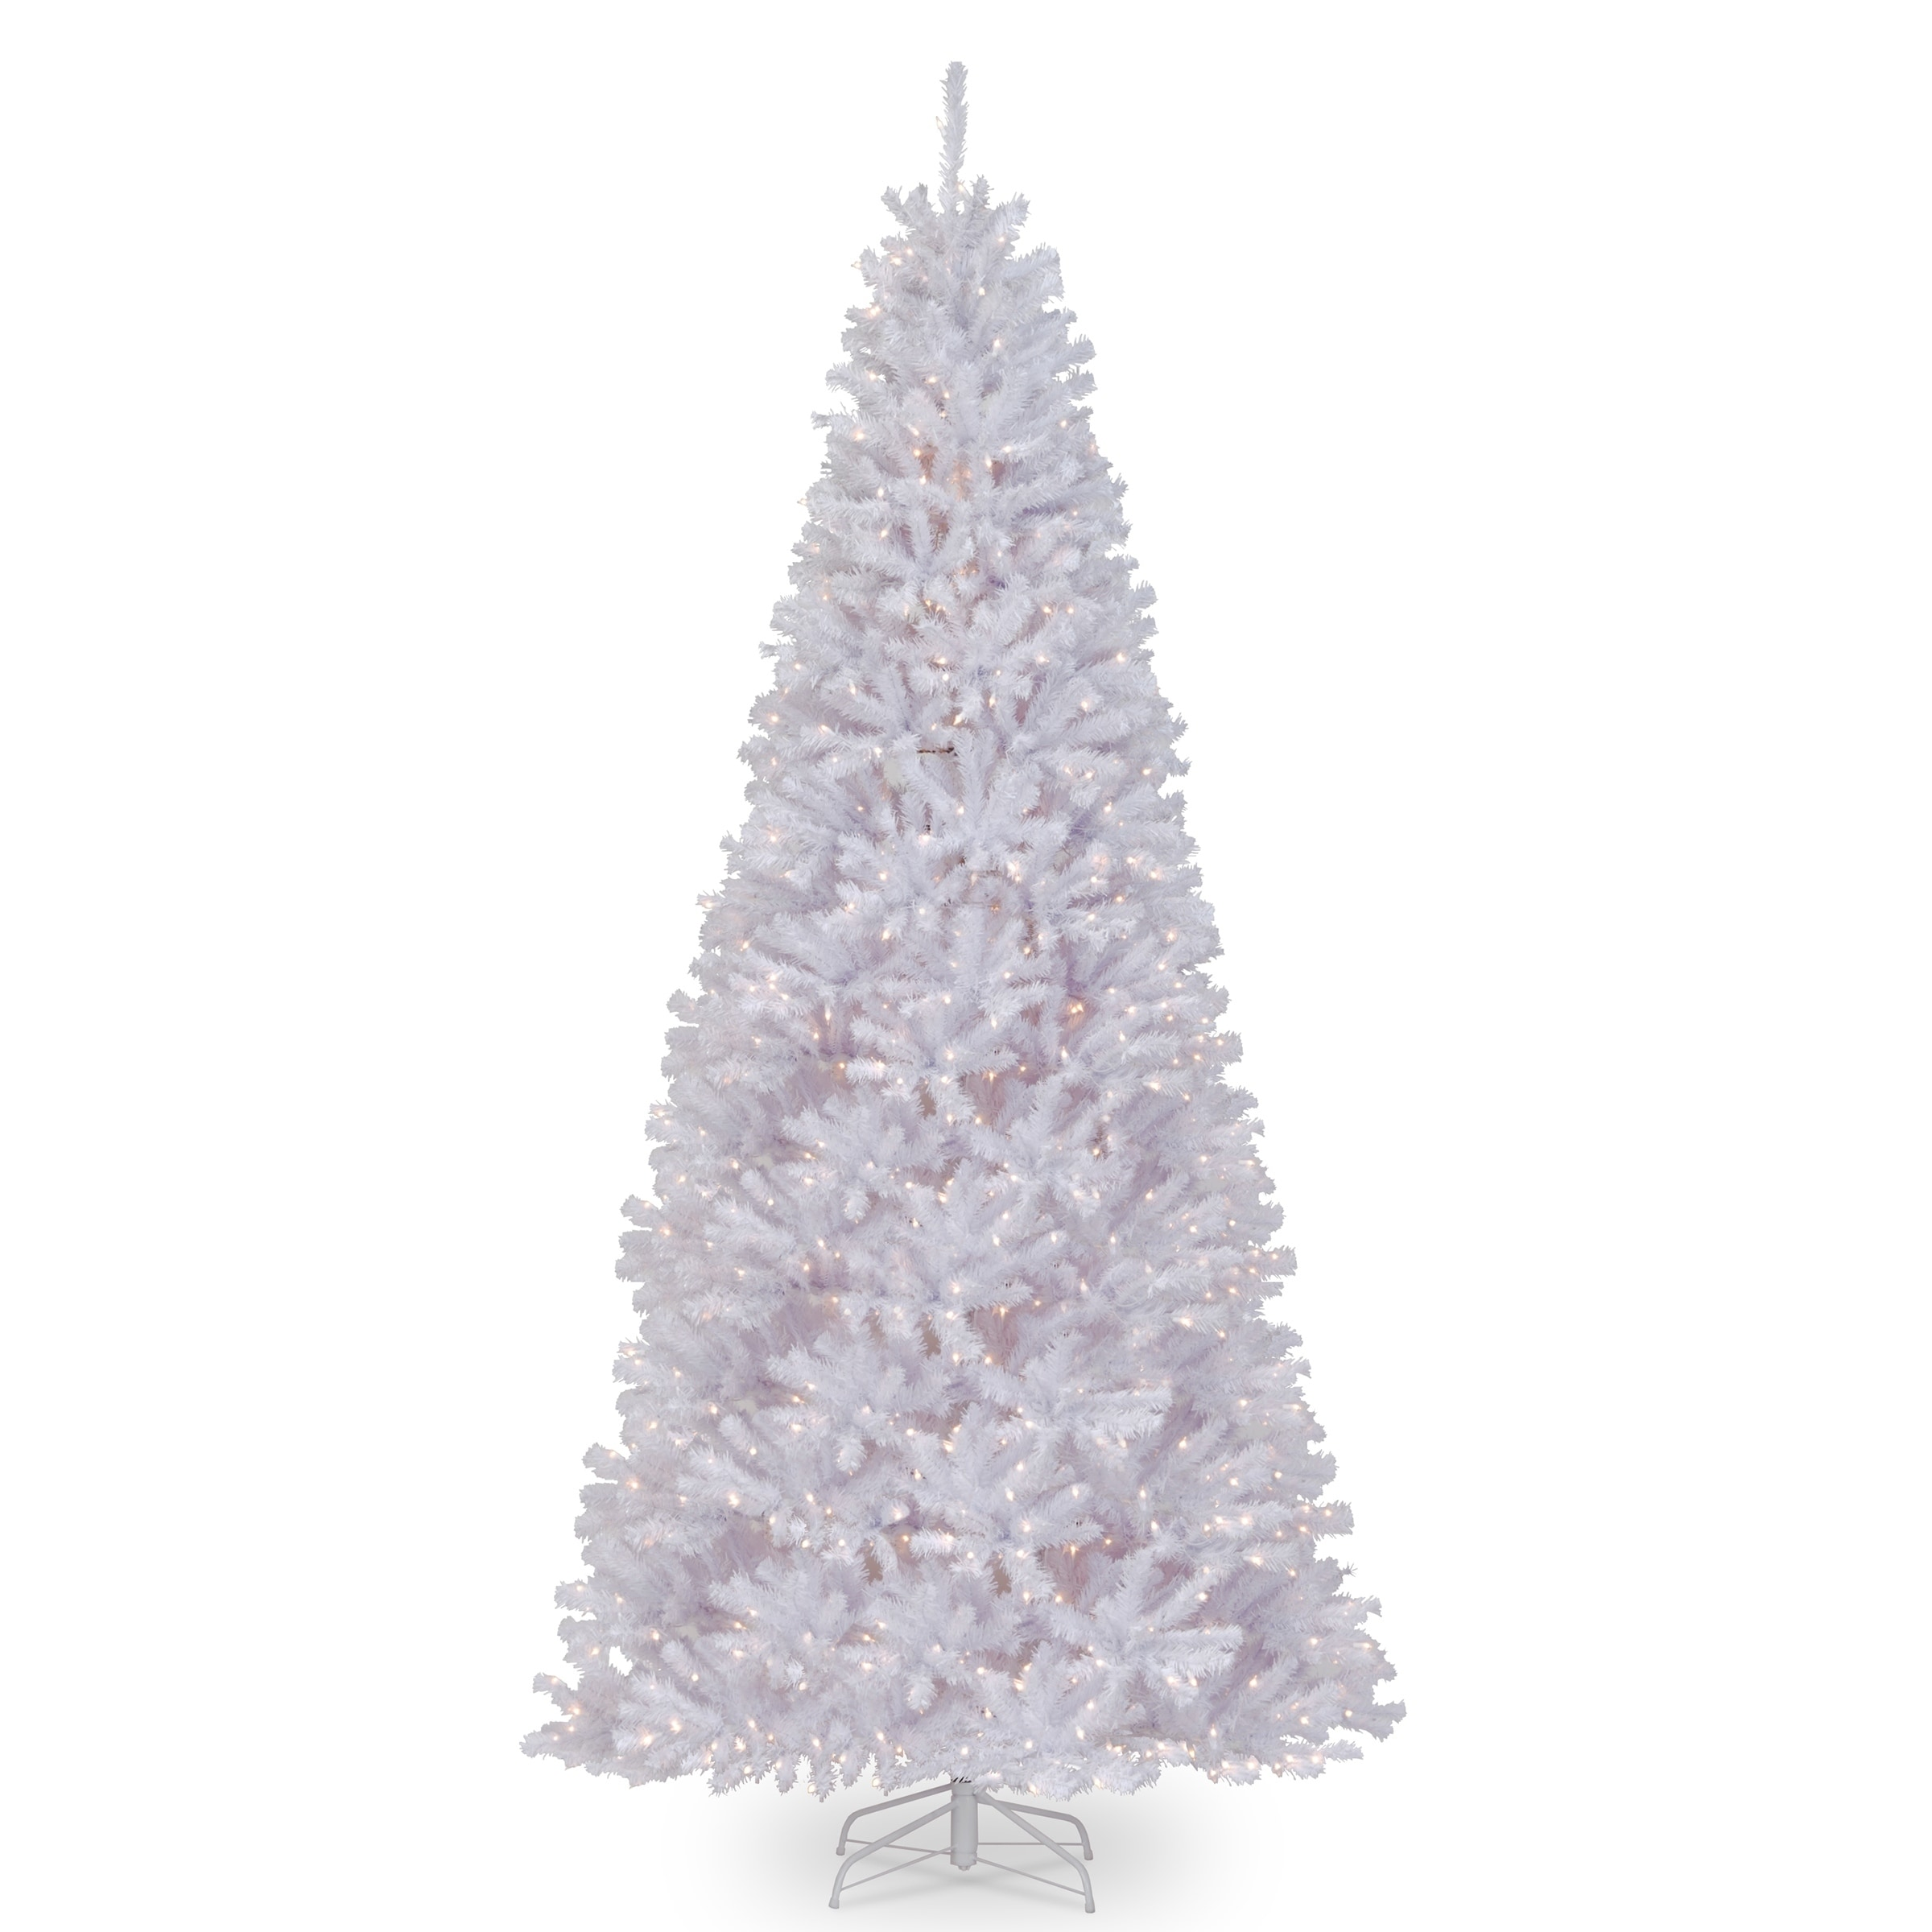 White Christmas Tree With Lights.12 Ft North Valley R White Spruce Tree With Clear Lights